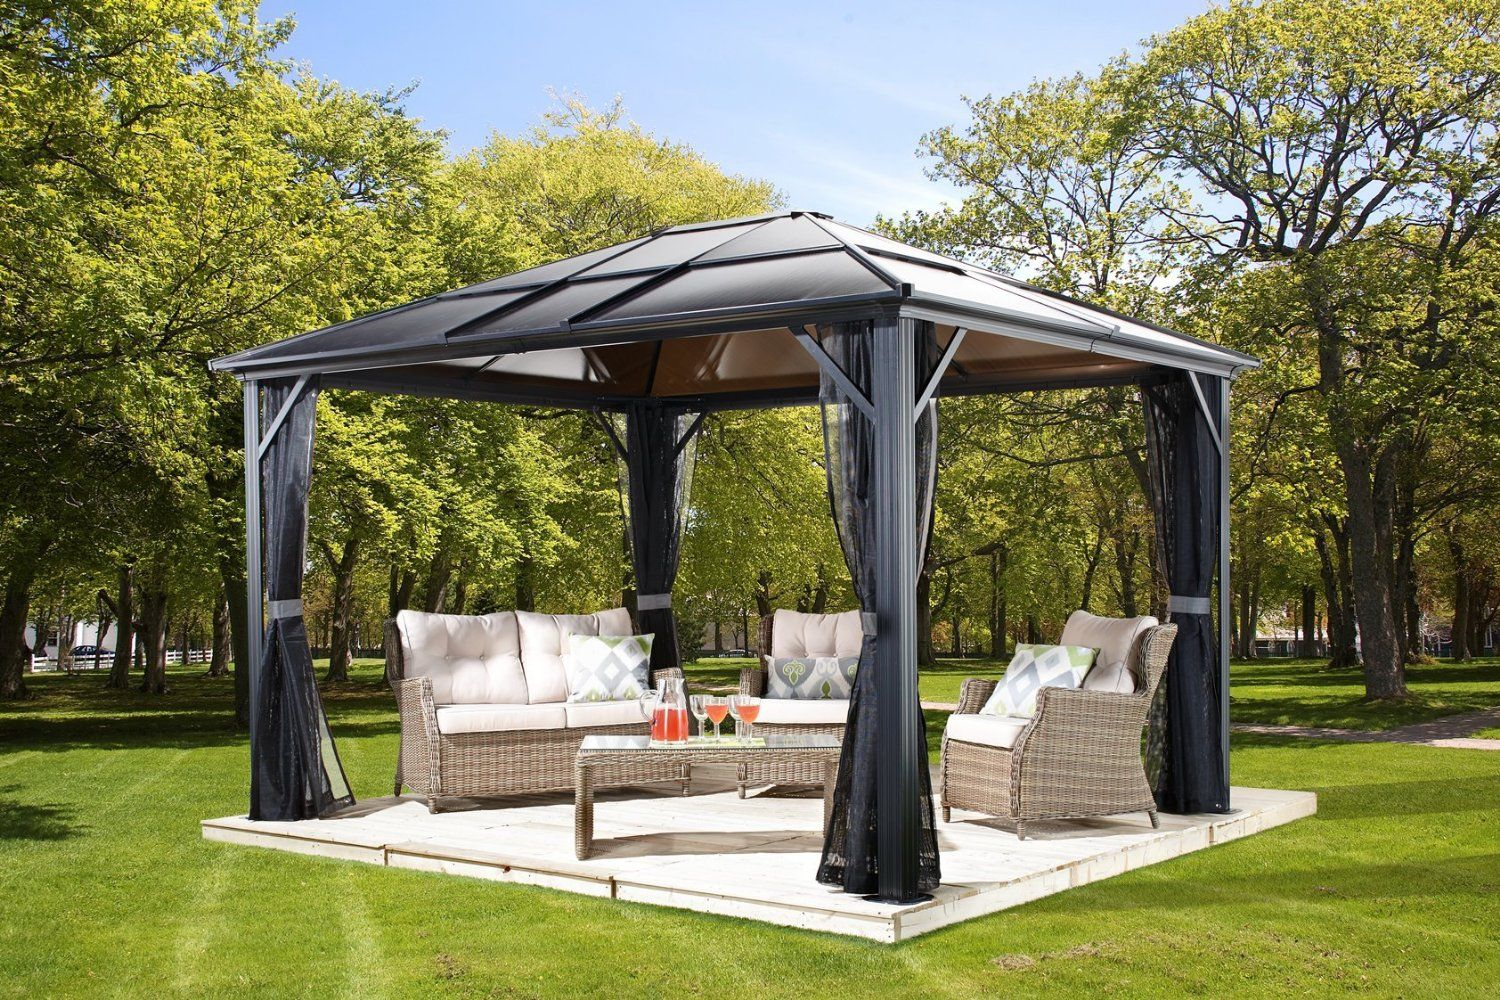 Perfect List Of Outdoor Patio Gazebos   Sojag Meridien Hard Top Sun Shelter, By  Charcoal. Get A Gazebo That Will Last In Your Outdoor Space For Years To  Come.